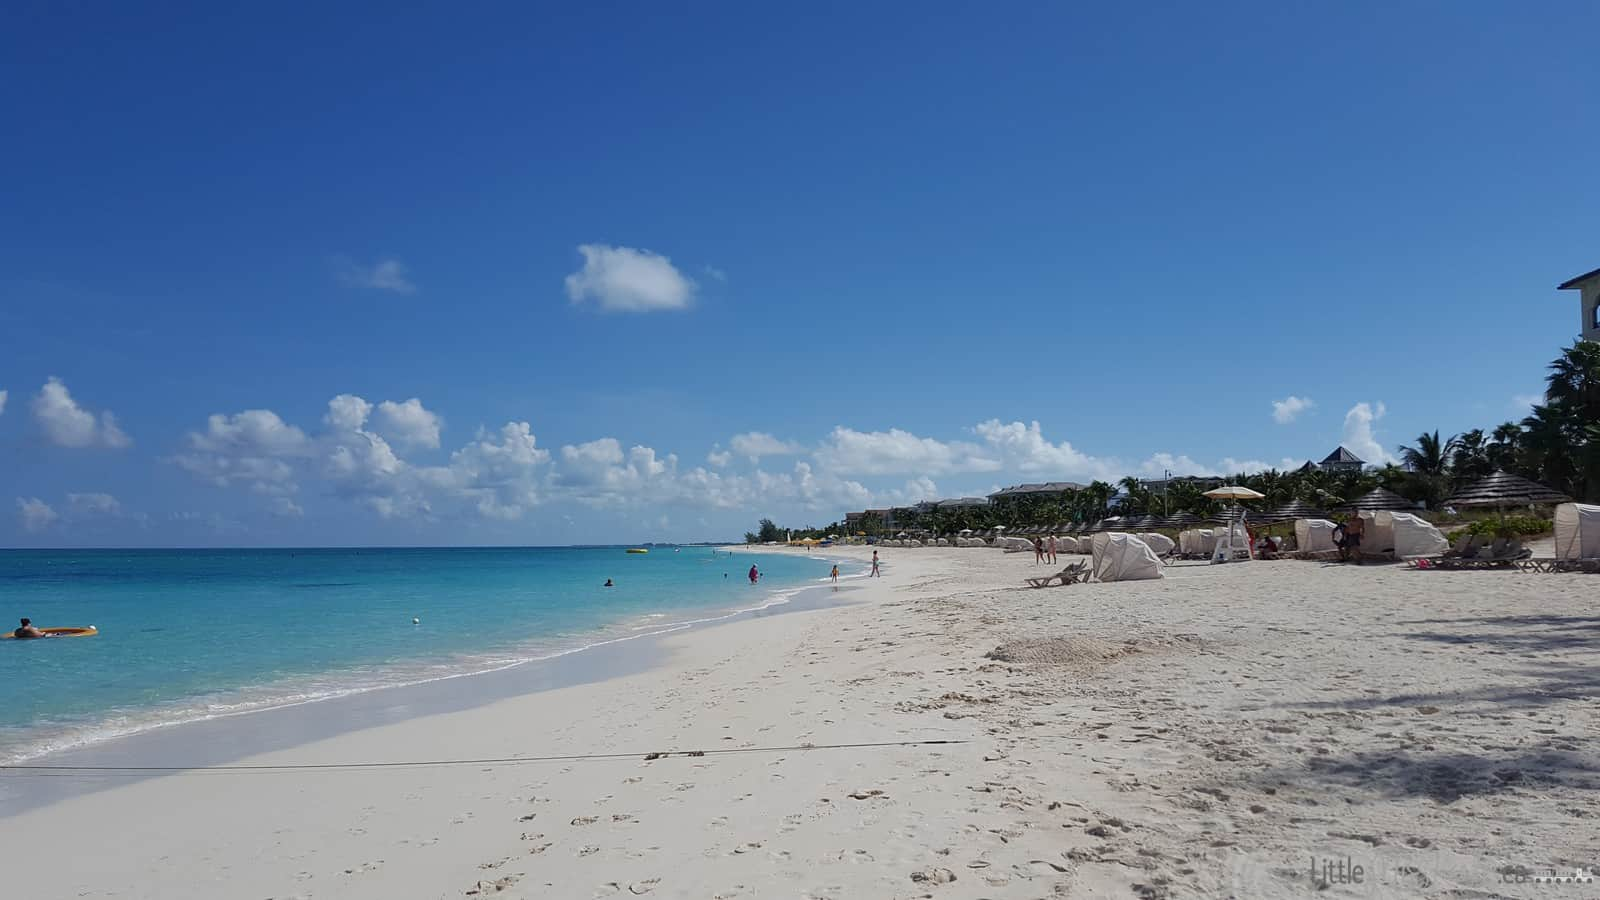 Pictures of Beaches Resort Village Turks and Caicos on Grace Bay via littlemisskate.ca